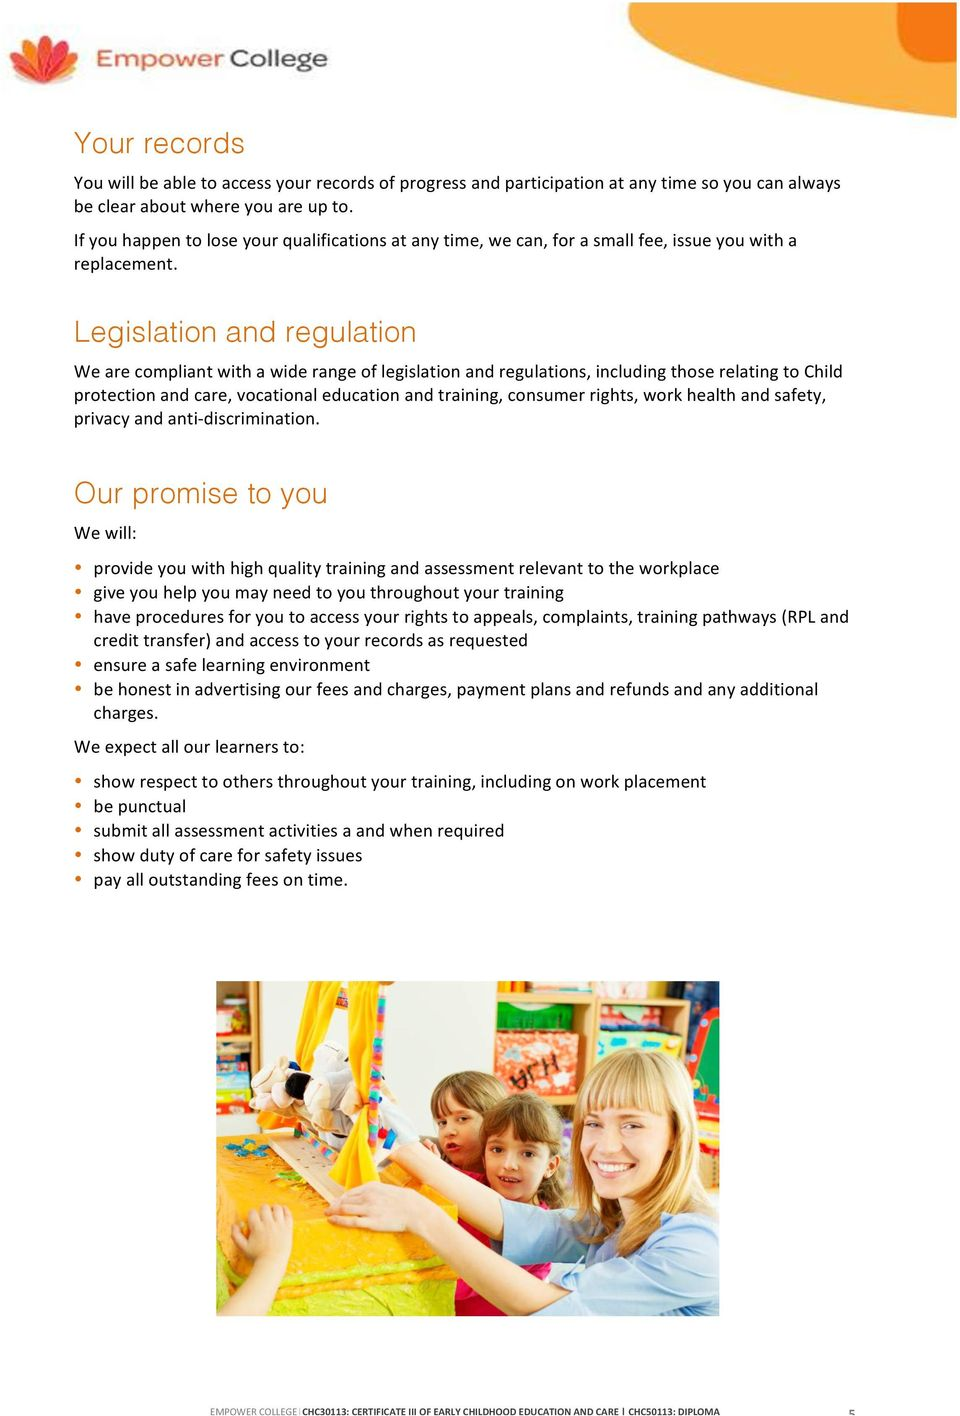 Legislation and regulation We are compliant with a wide range of legislation and regulations, including those relating to Child protection and care, vocational education and training, consumer